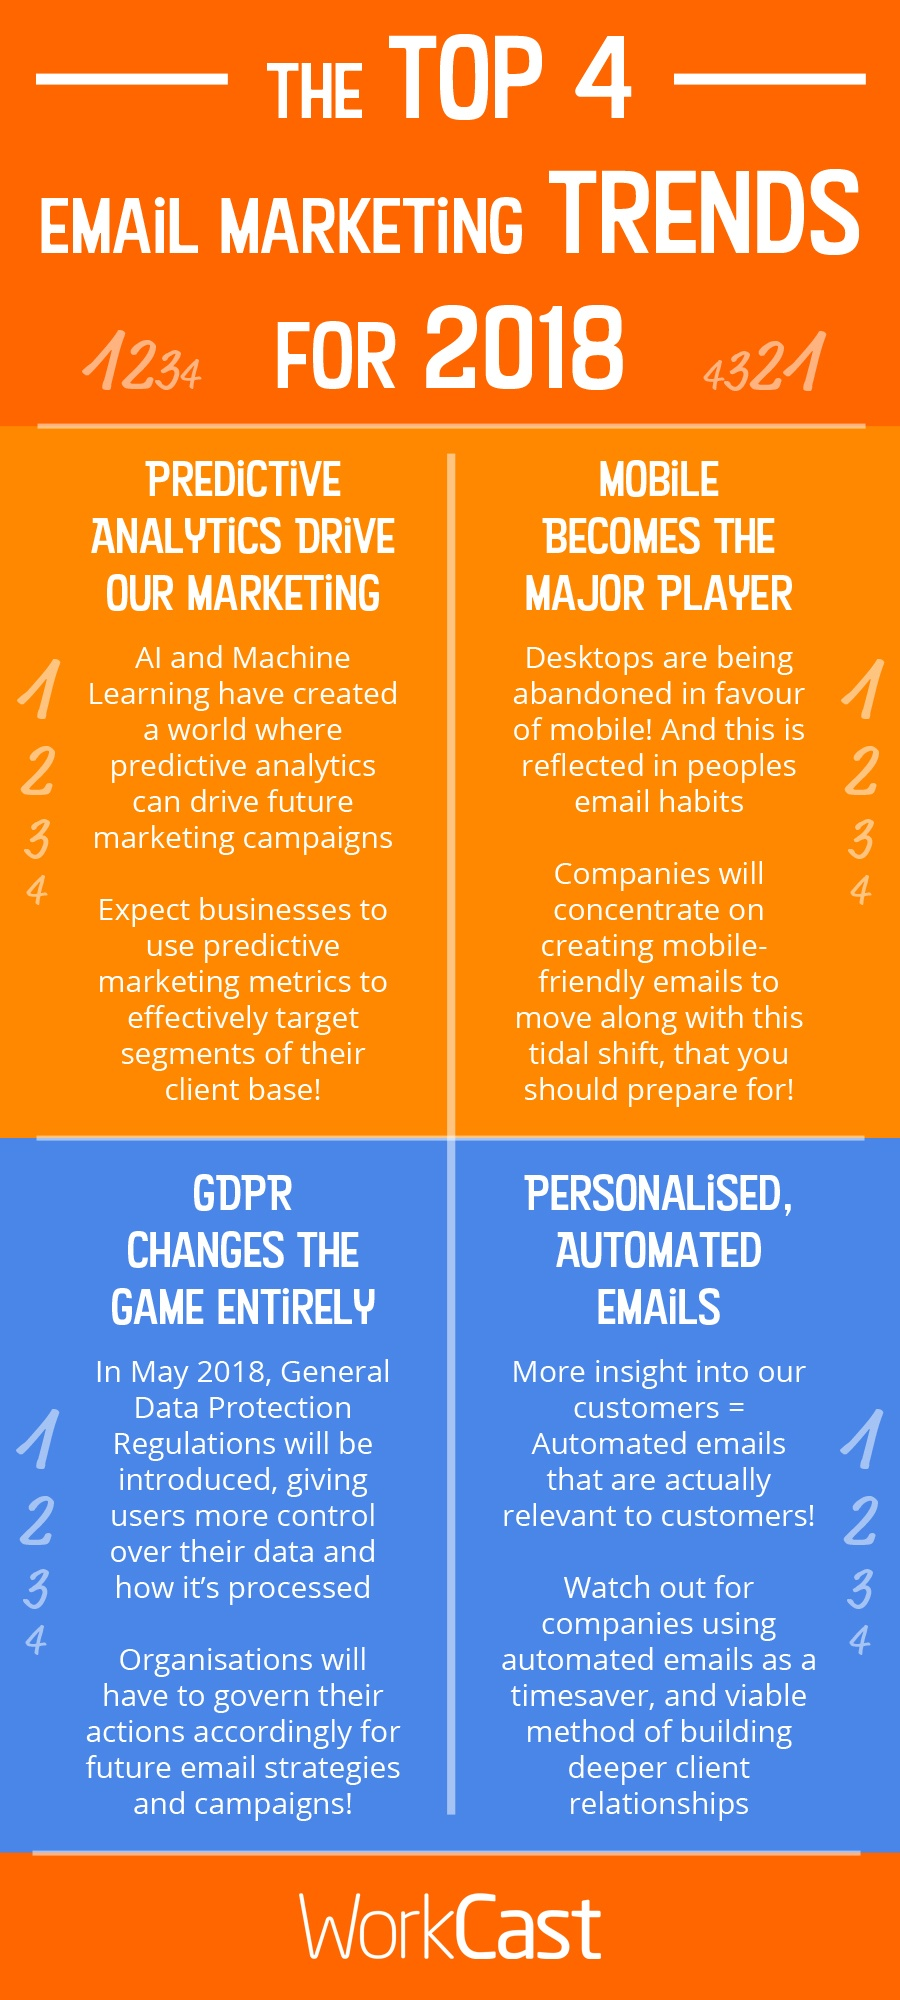 Top4-Email-Marketing-Trends-2018.jpg